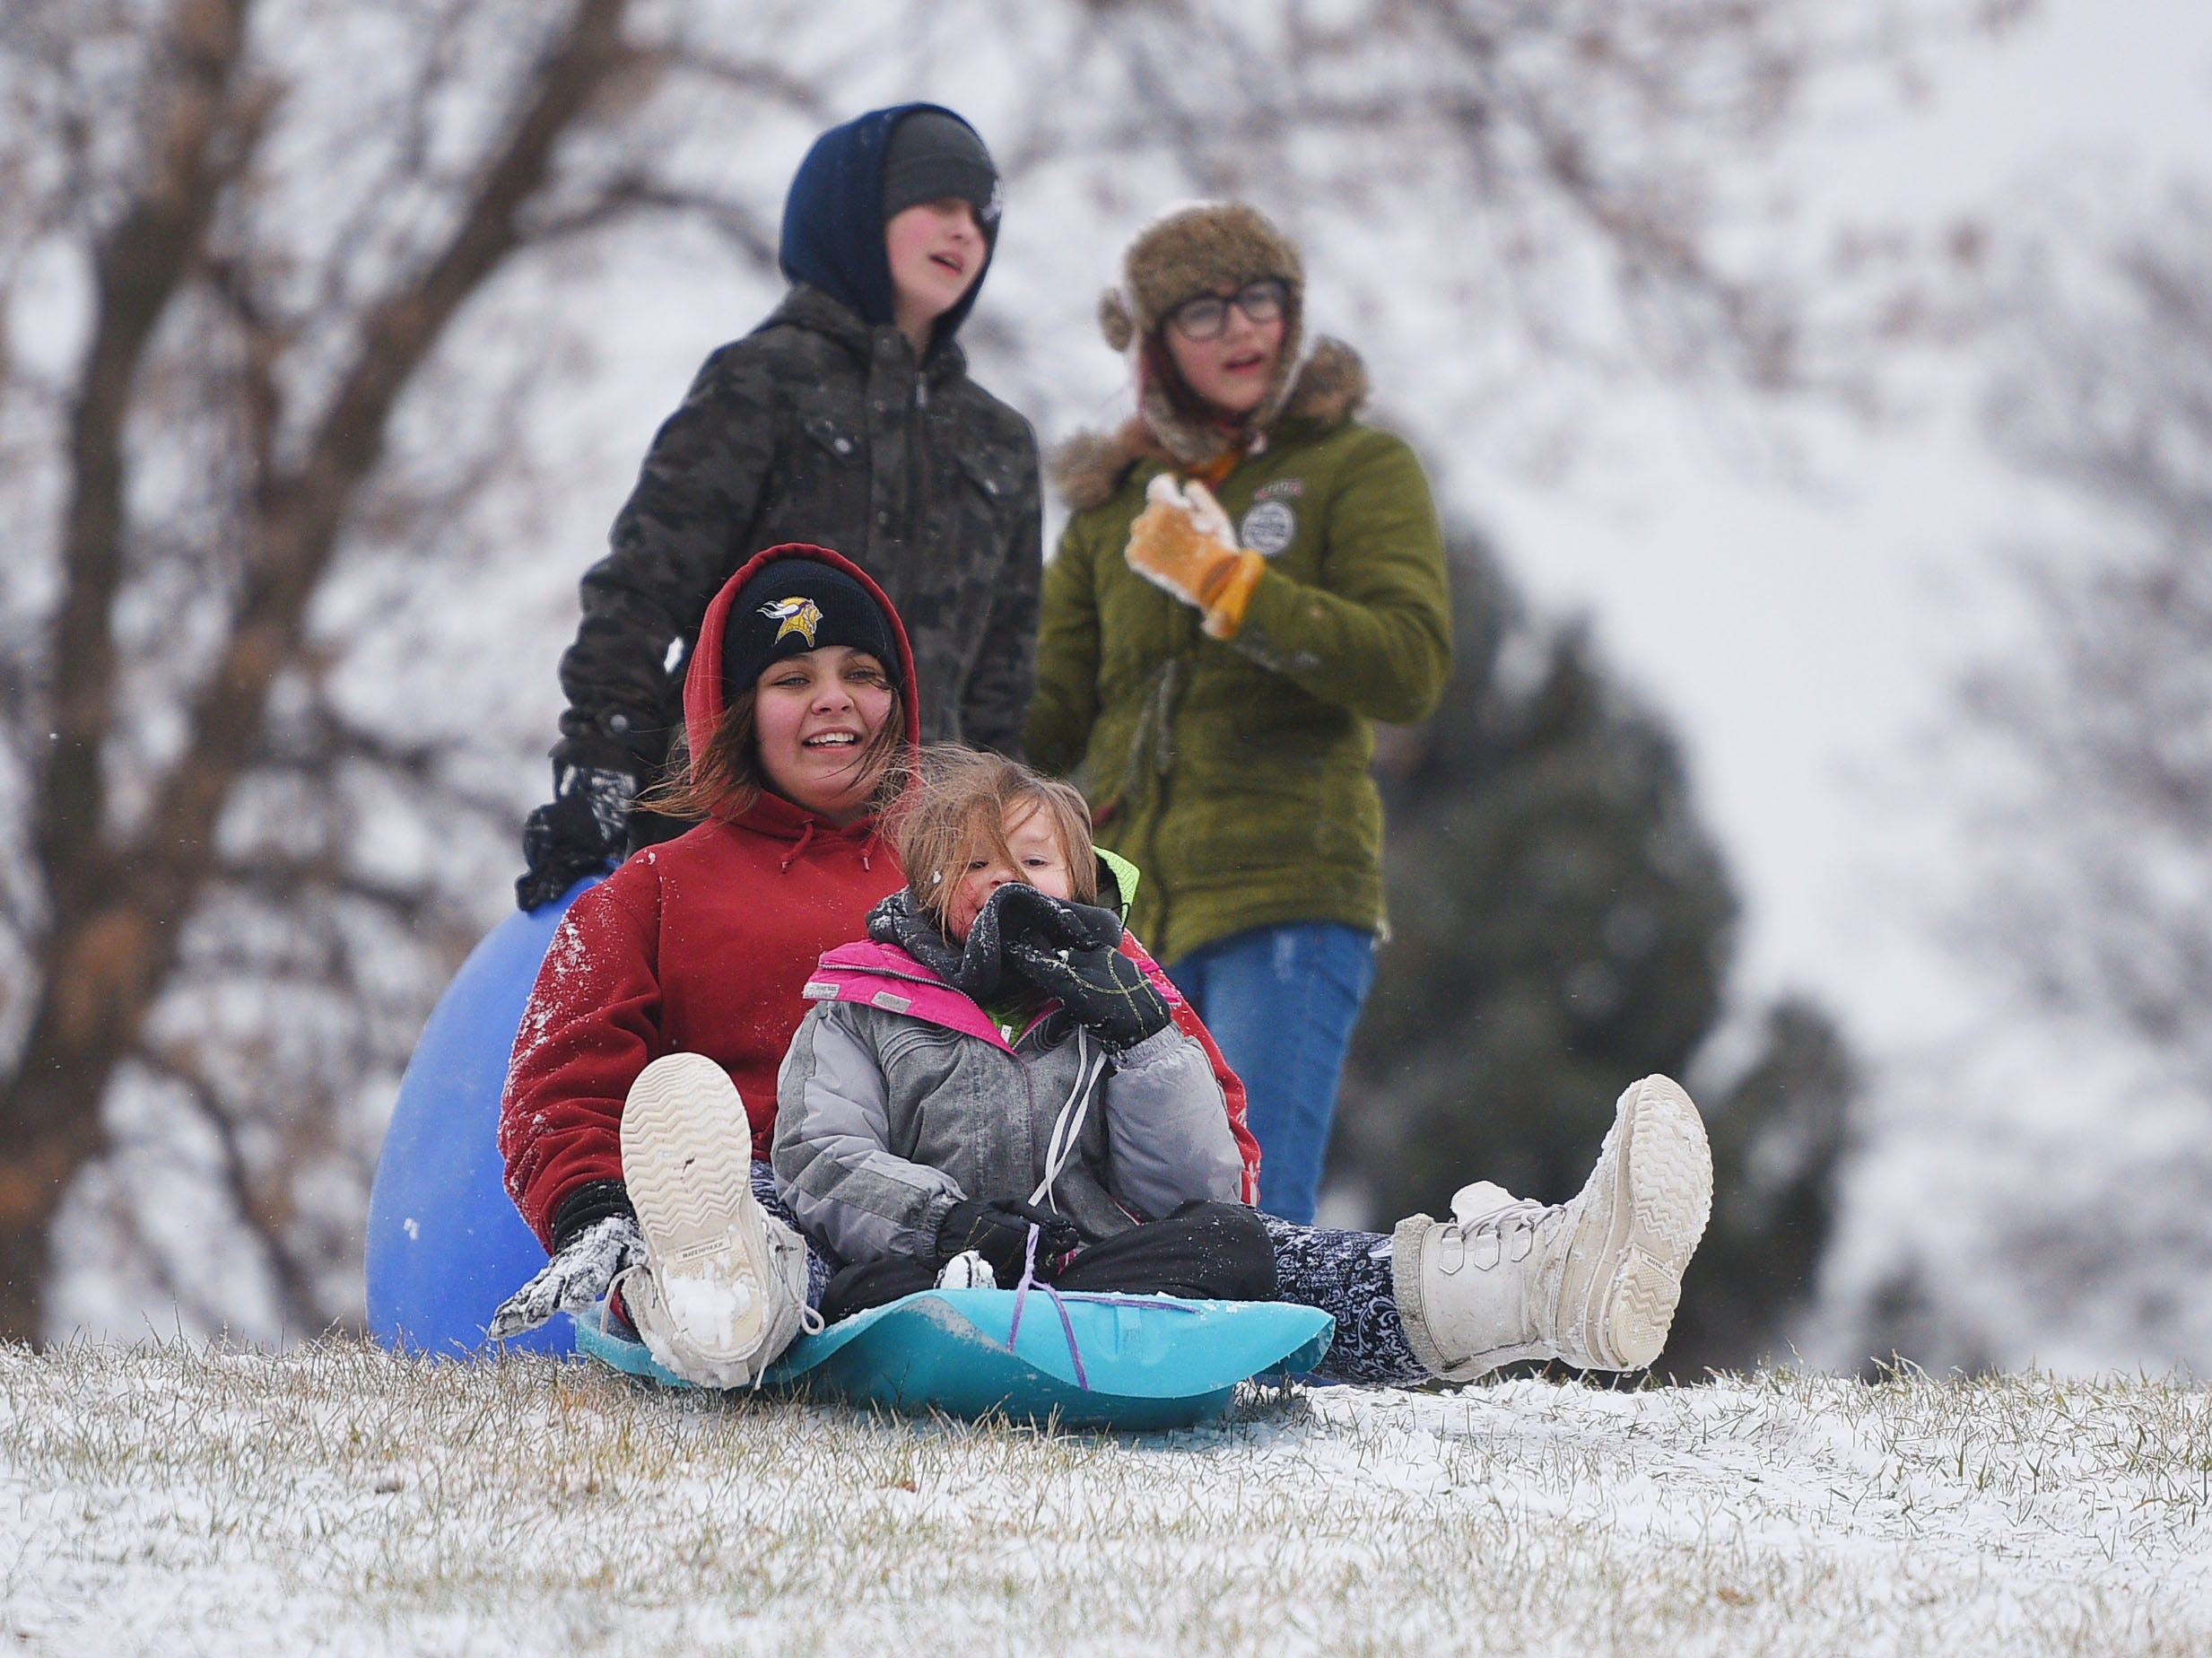 Brittaney Schultz, rear, and Jozie Taylor, front, prepare to sled down the hill near the Midco Aquatic Center Saturday, Dec. 1, in Sioux Falls. Ava Taylor and Santina Buckles, pictured in the back, were sledding with Brittaney and Jozie.